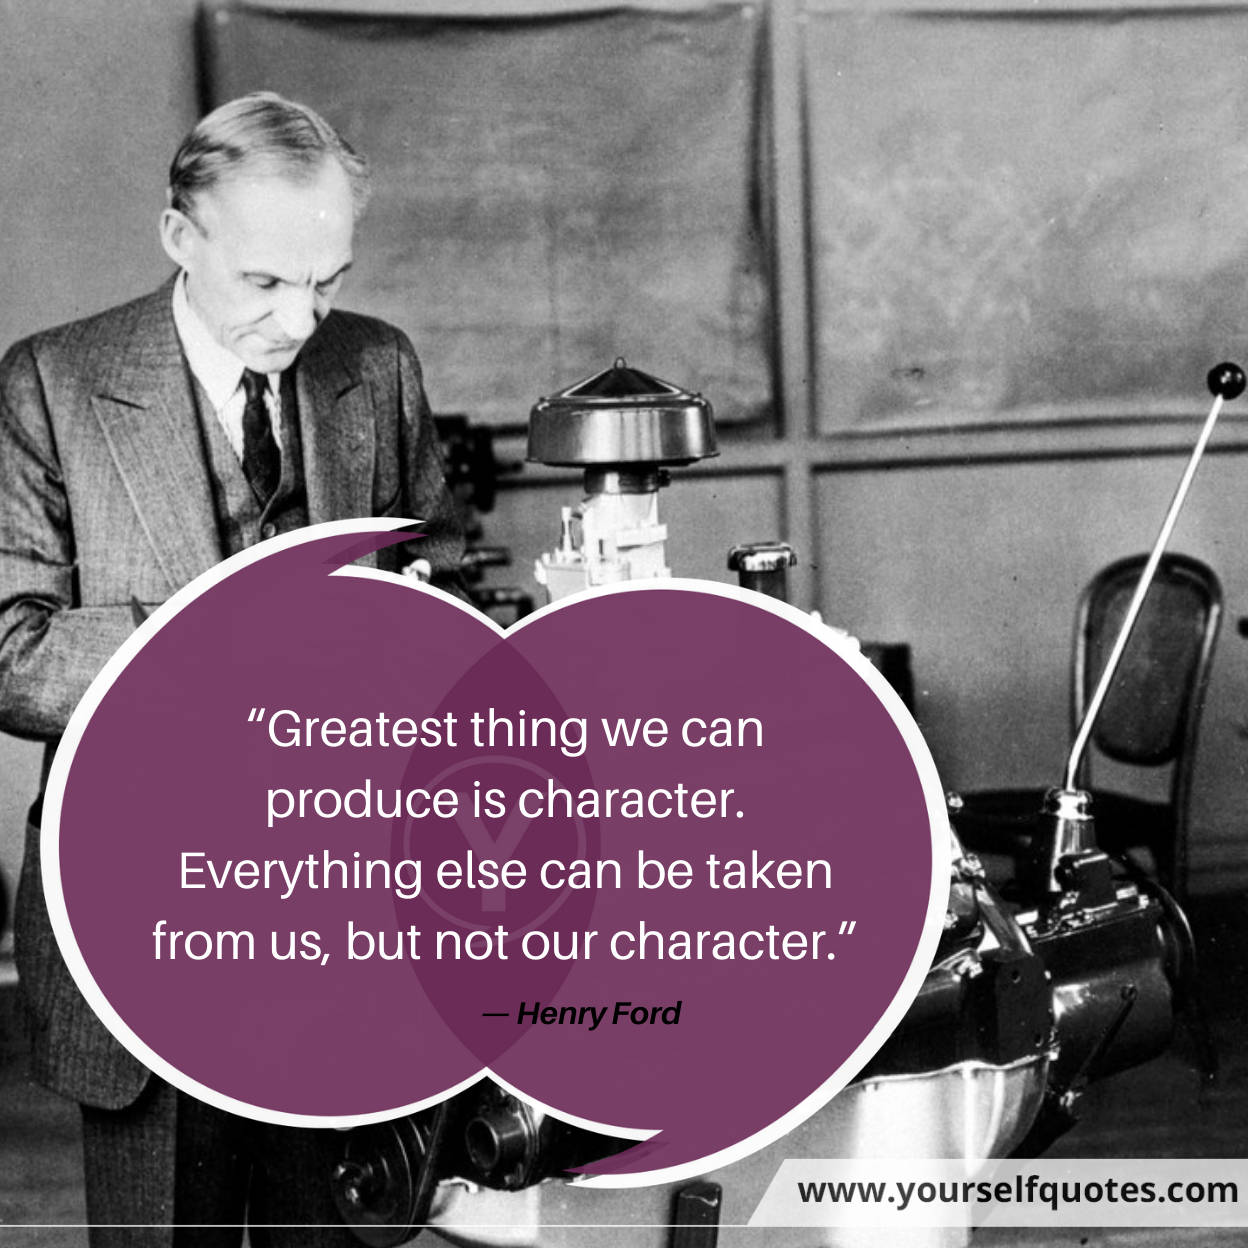 Best Henry Ford Quote Images